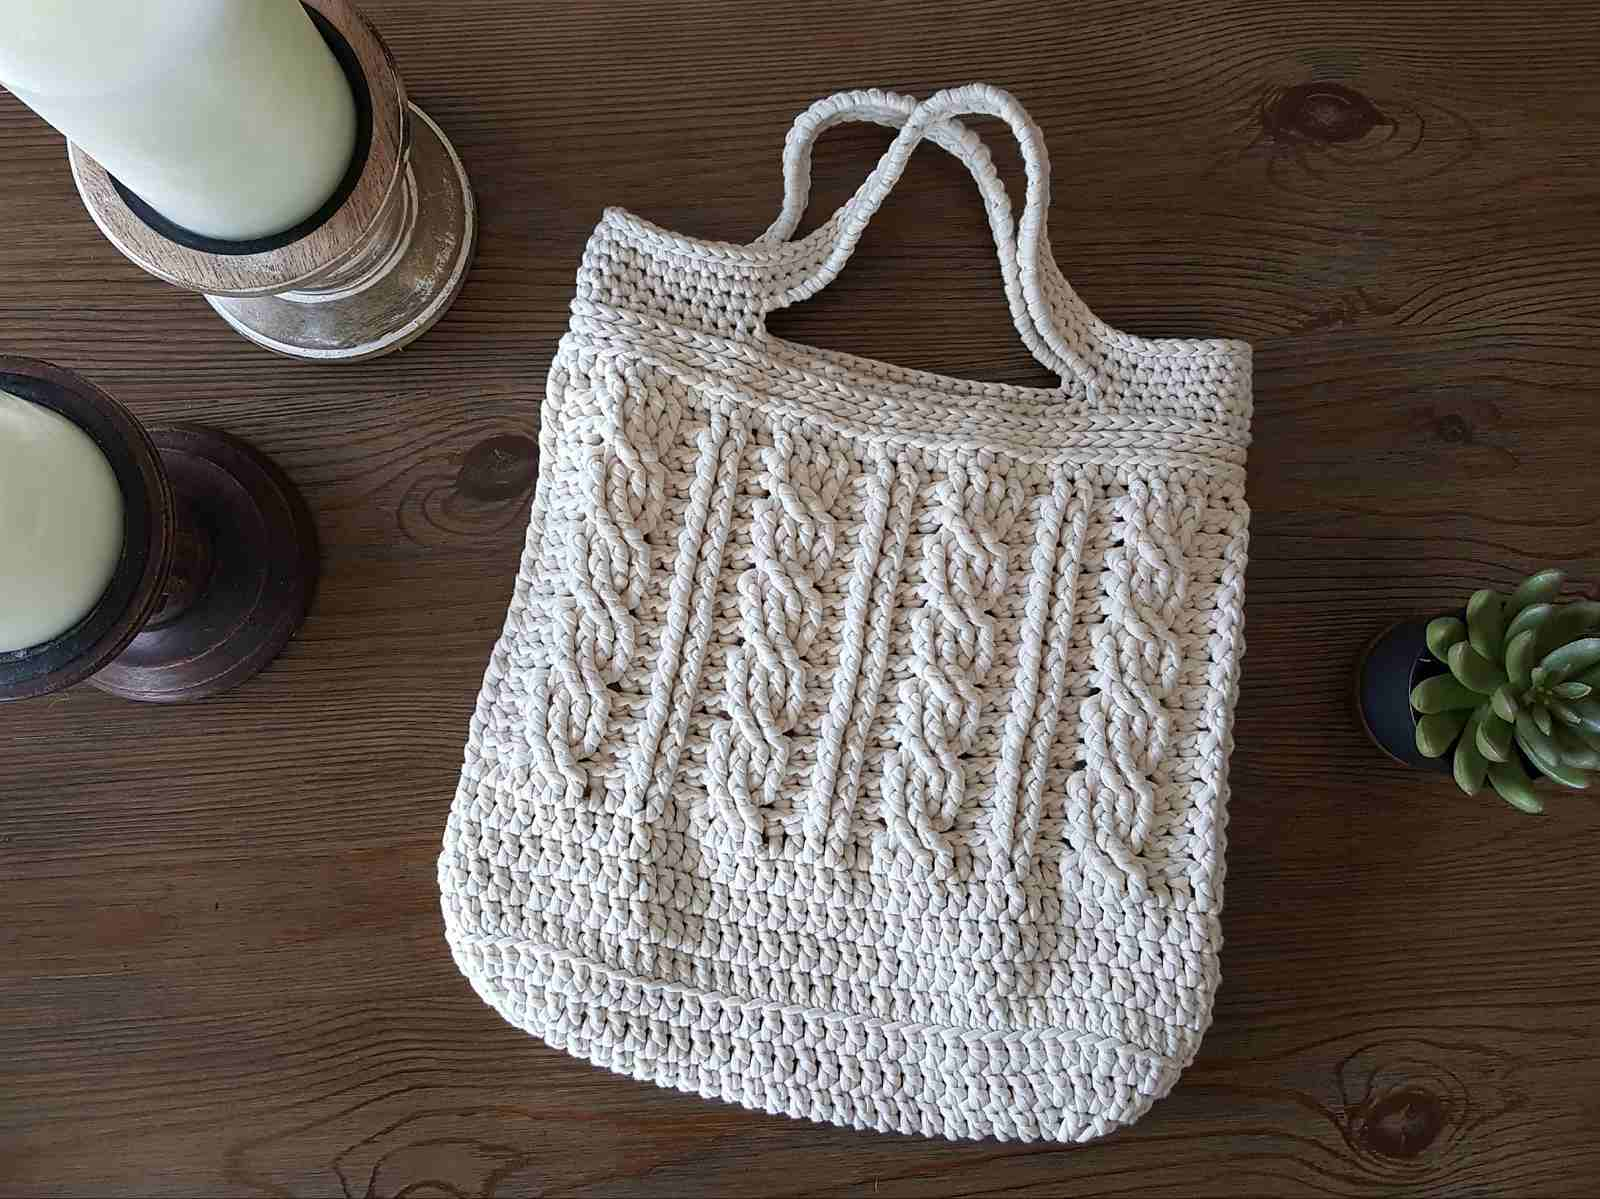 9 Creative Crochet Bag Patterns